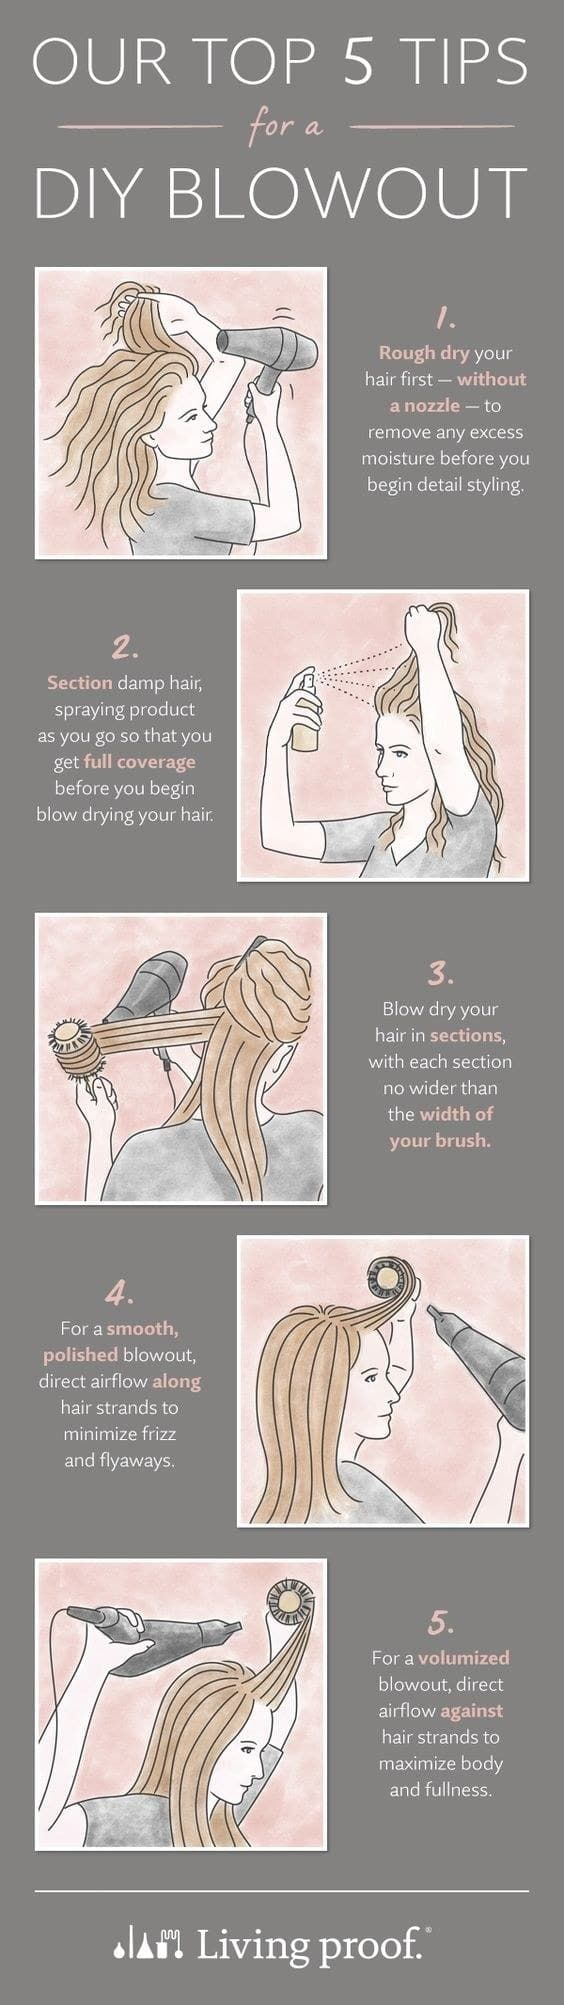 top 5 tips for a blowout